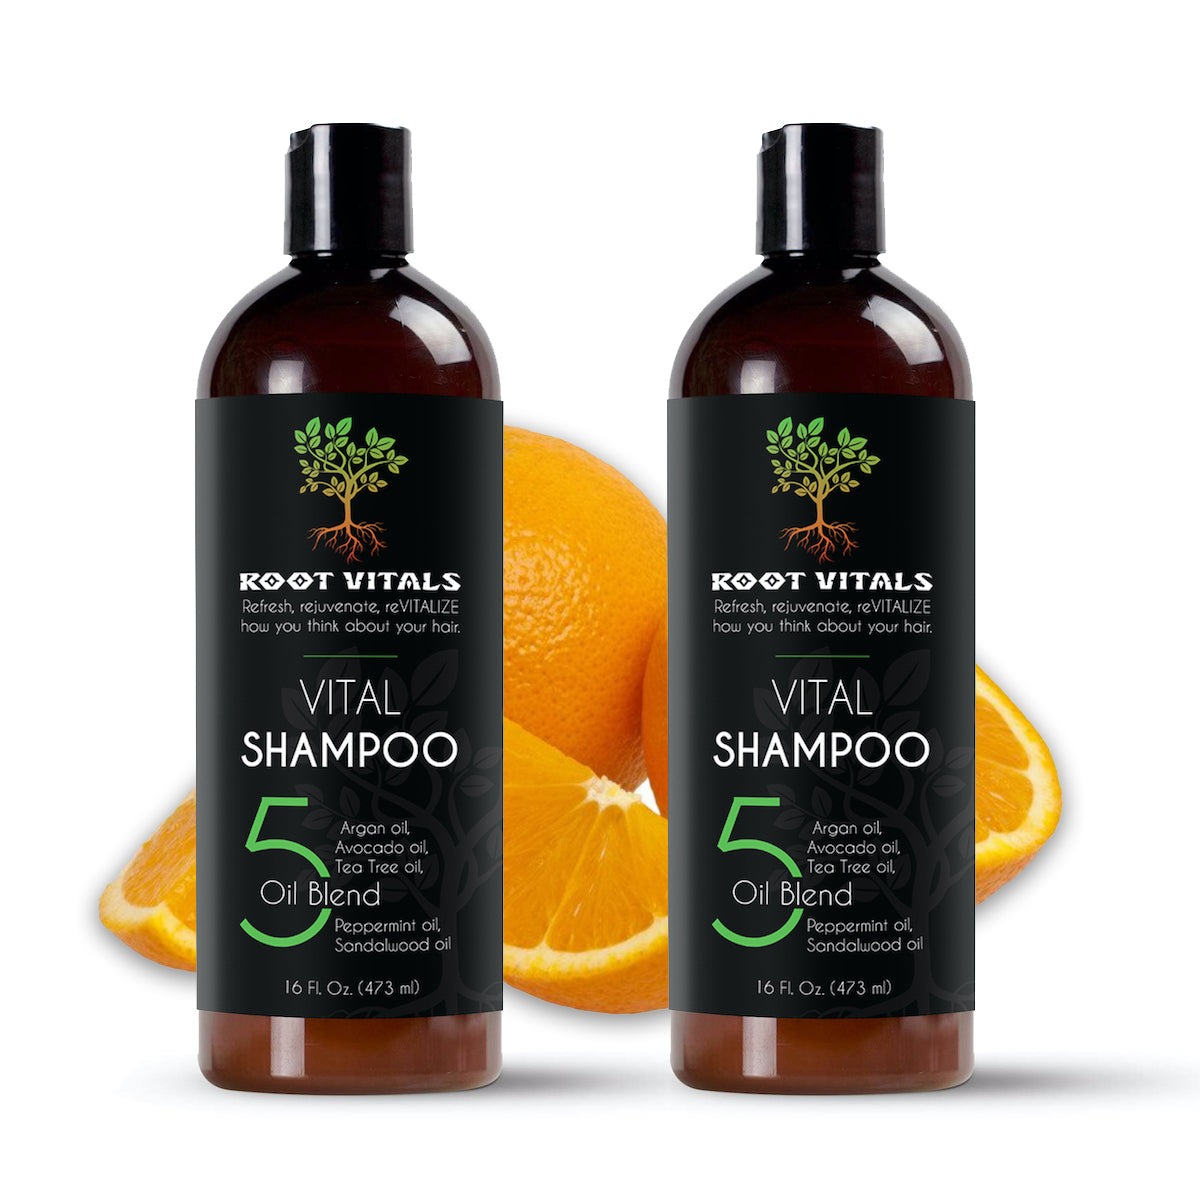 Two 160 Orange scented ounce bottles of Natural Hair Growth Shampoo